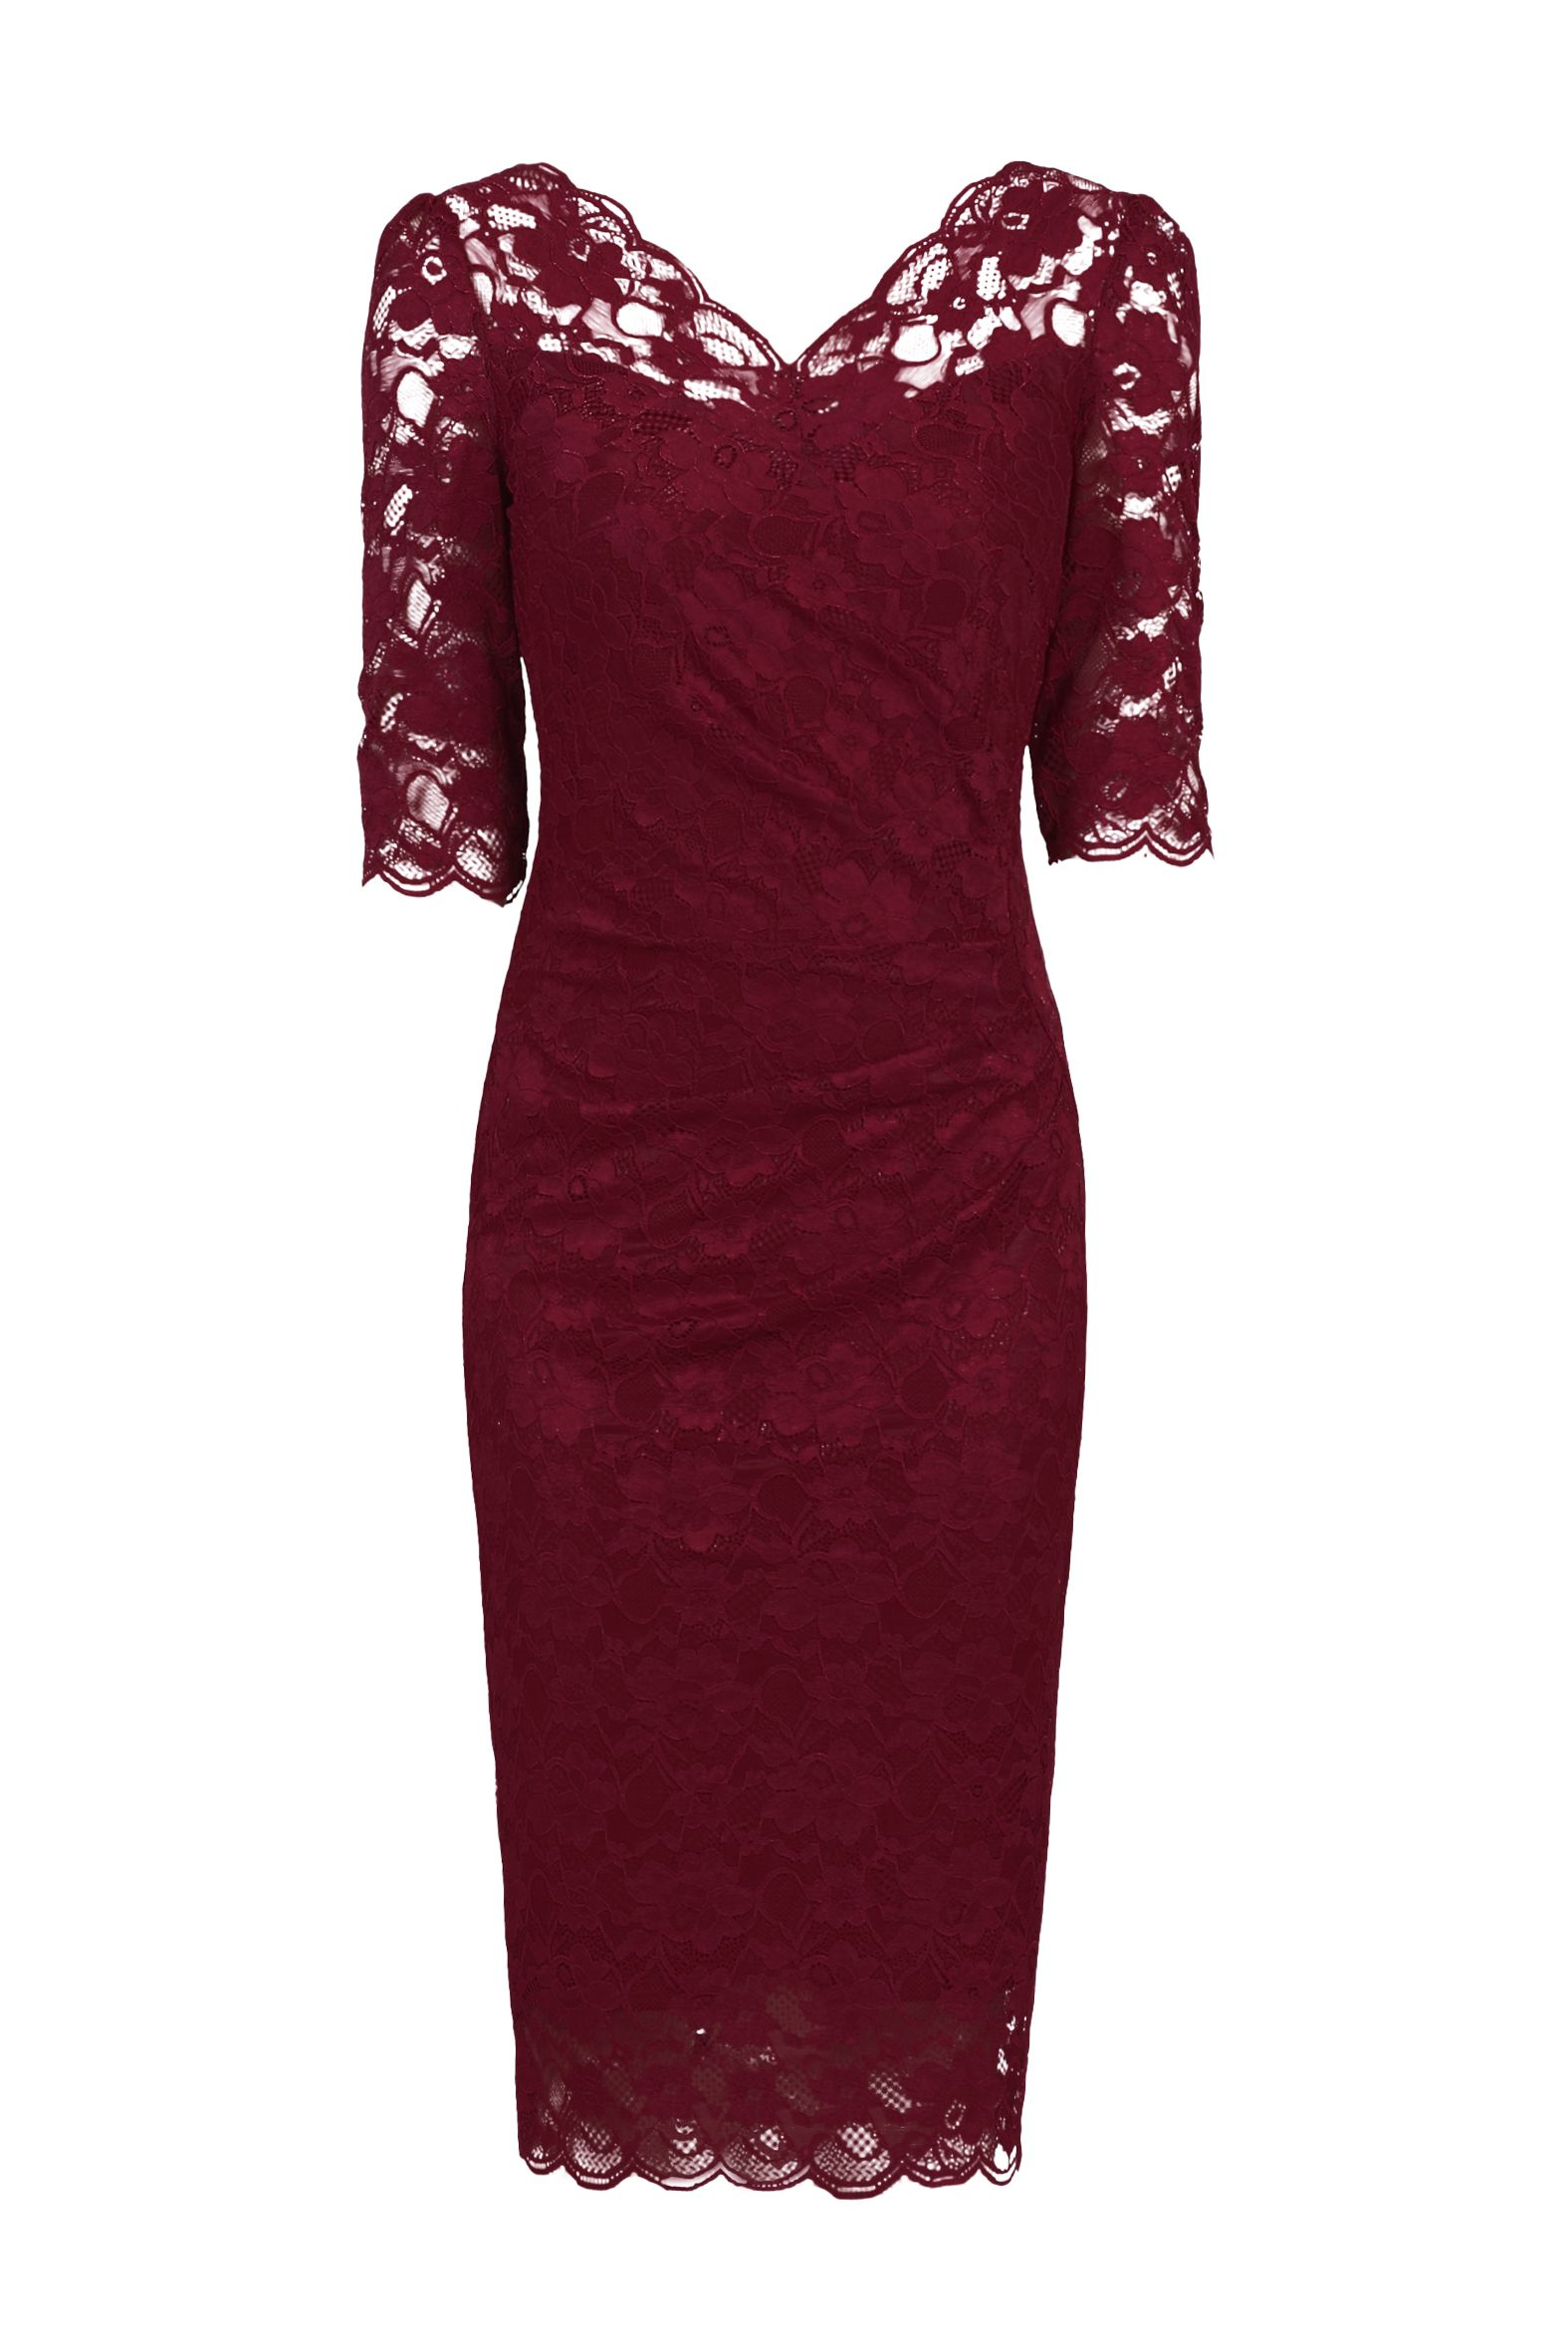 Jolie Moi 3/4 Sleeve Scalloped Lace Dress, Red